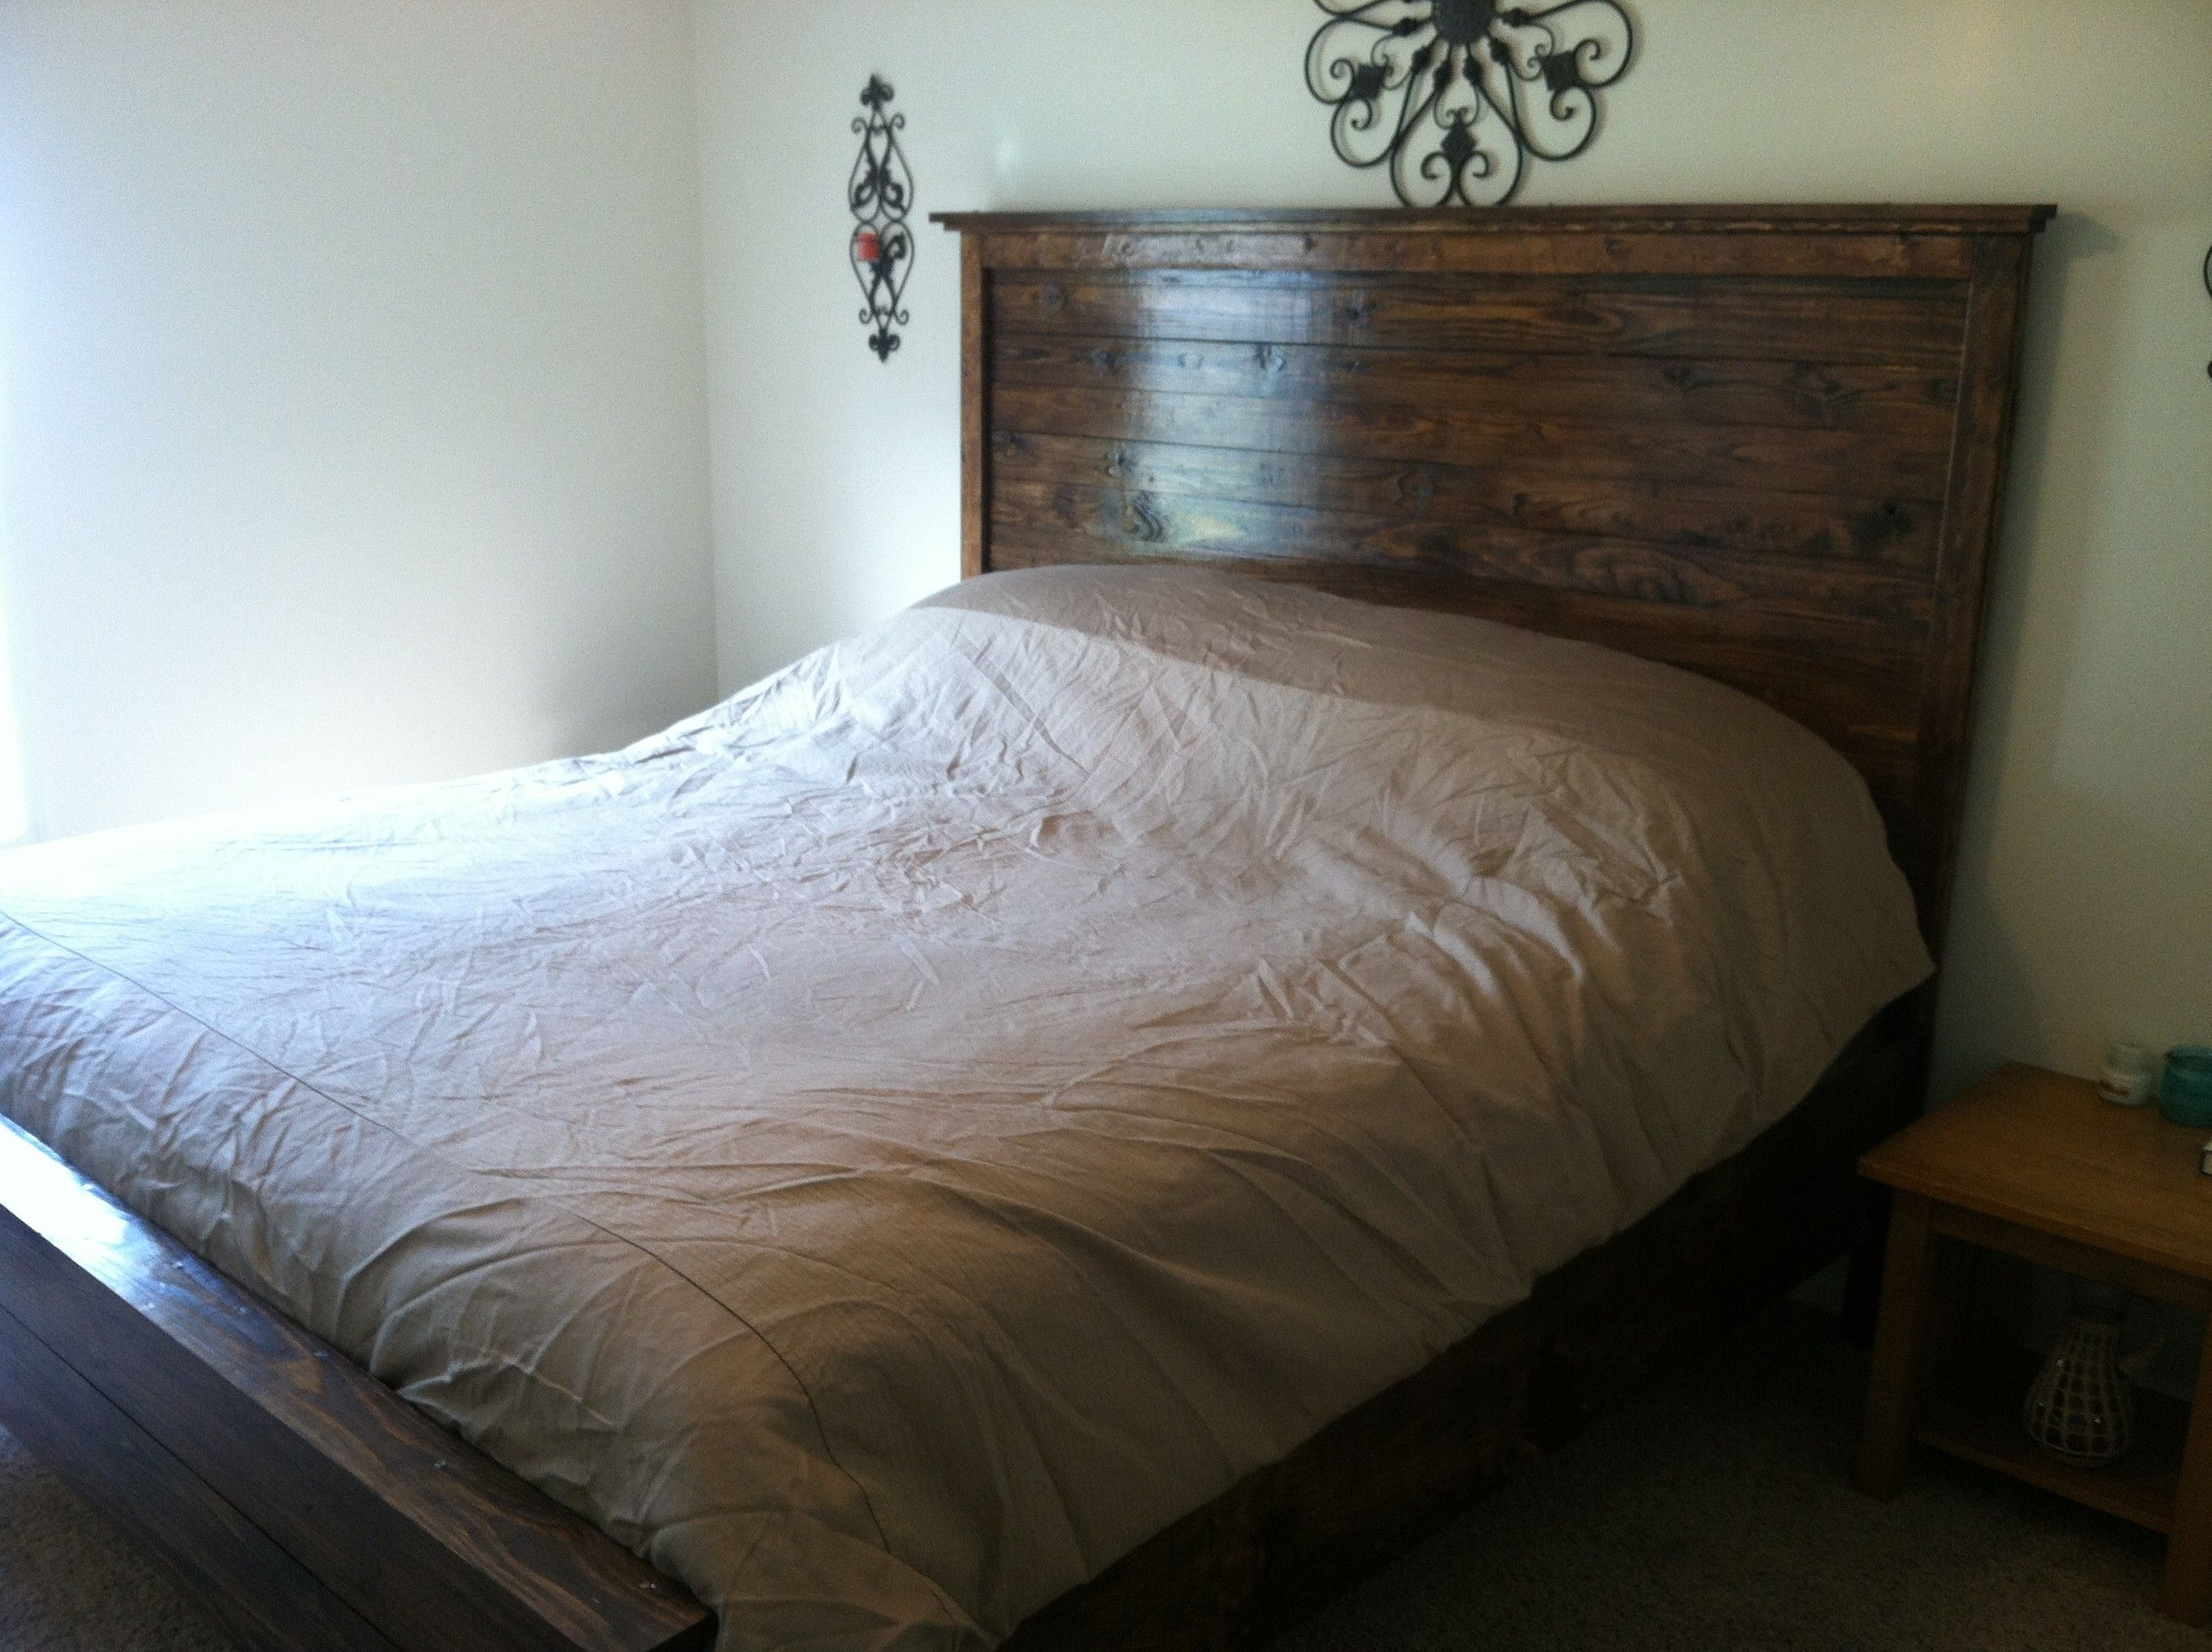 rustic wood decor ideas cheap and simple rustic chic decor diy rustic wooden bed headboard ideas. Black Bedroom Furniture Sets. Home Design Ideas